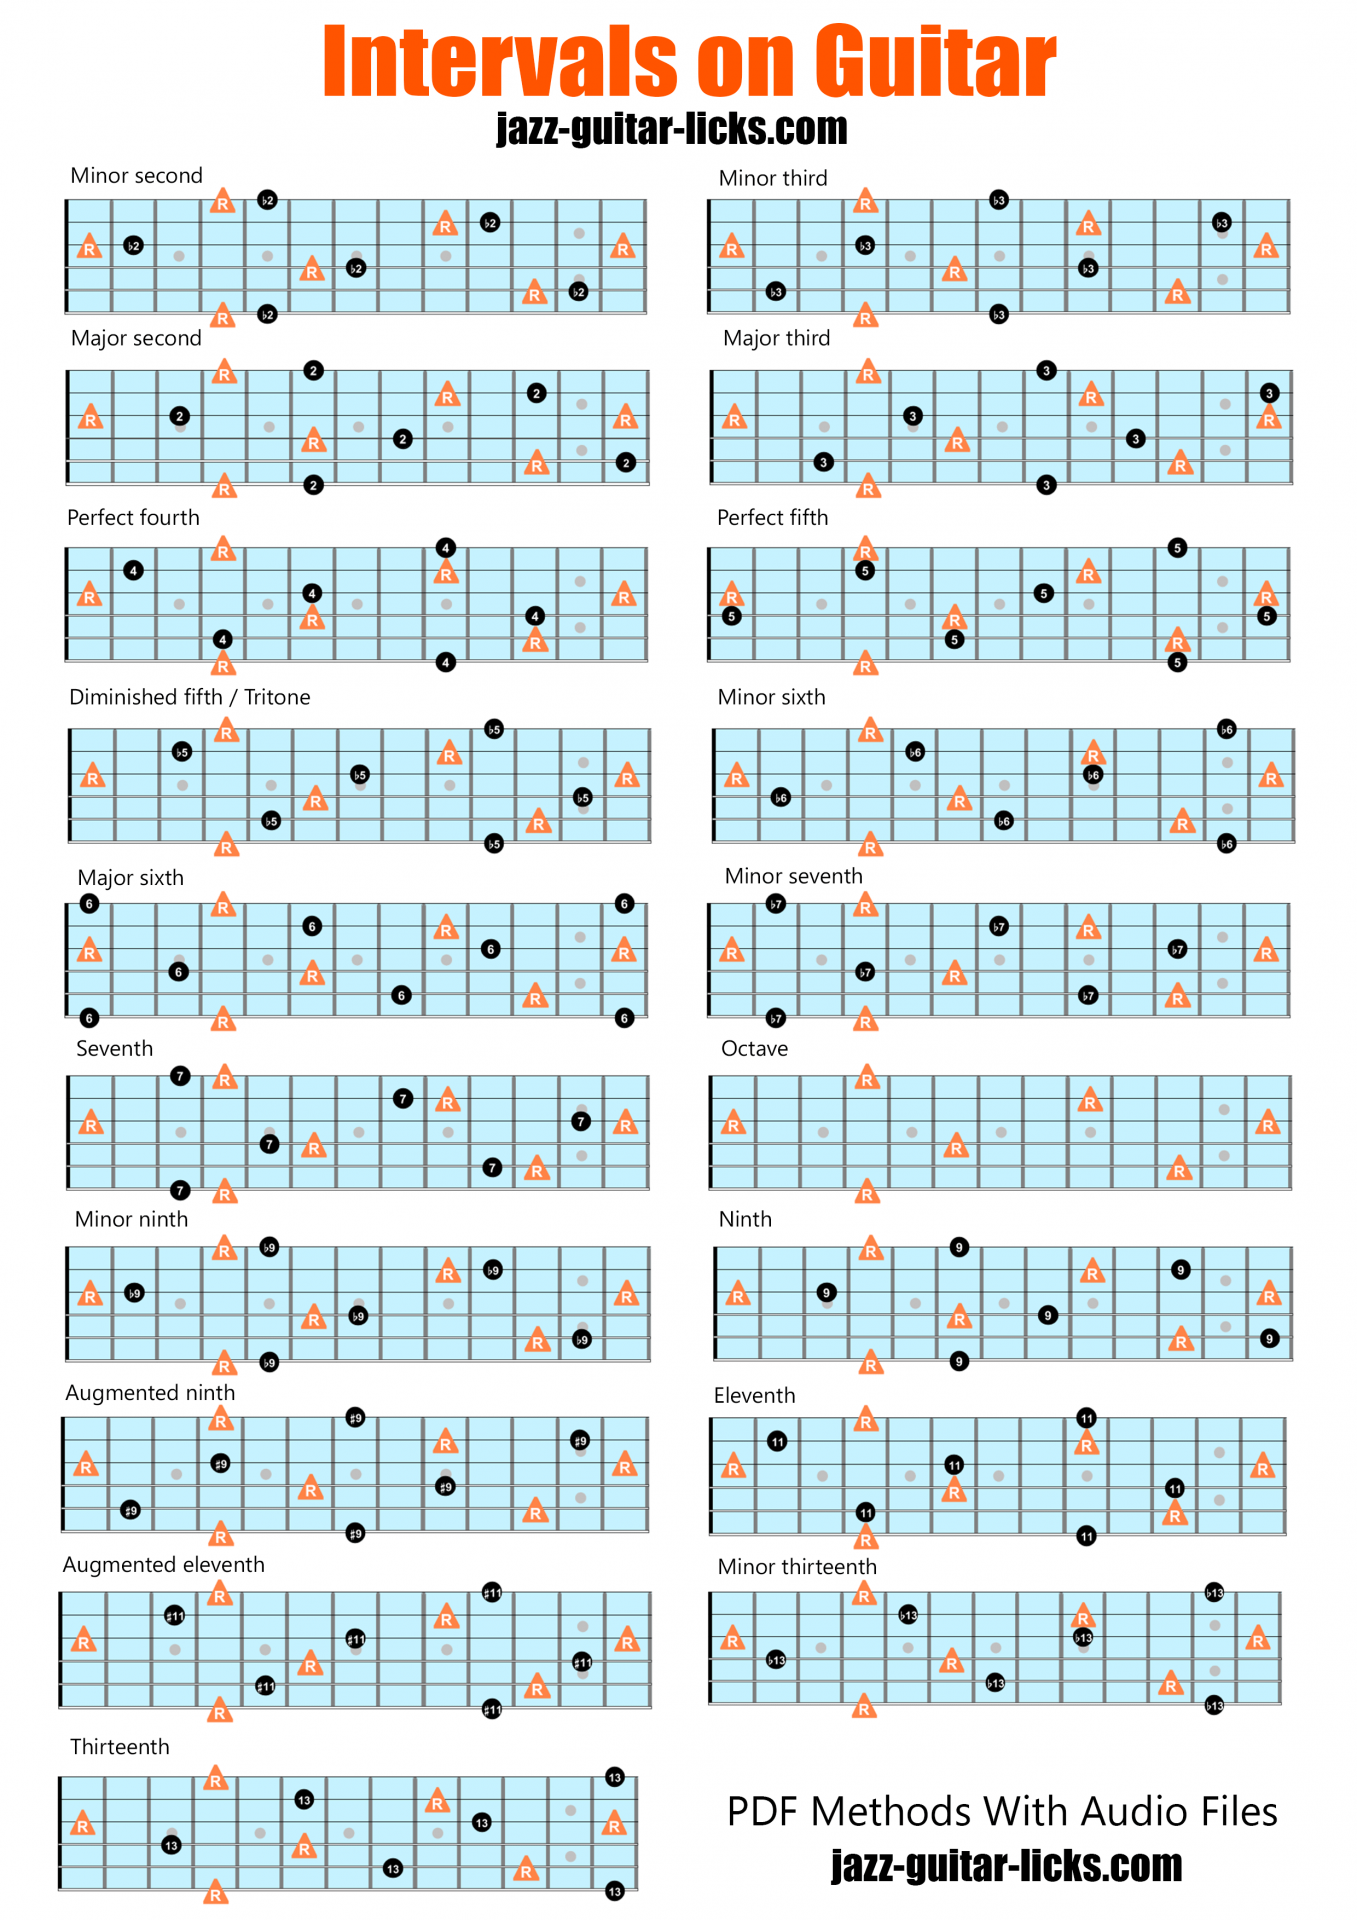 Intervals on guitar chart